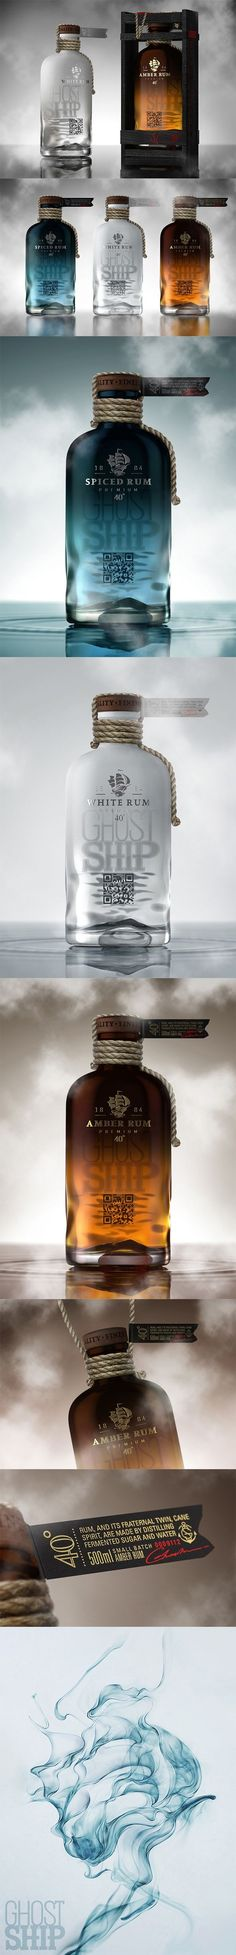 Ghost Ship Rum